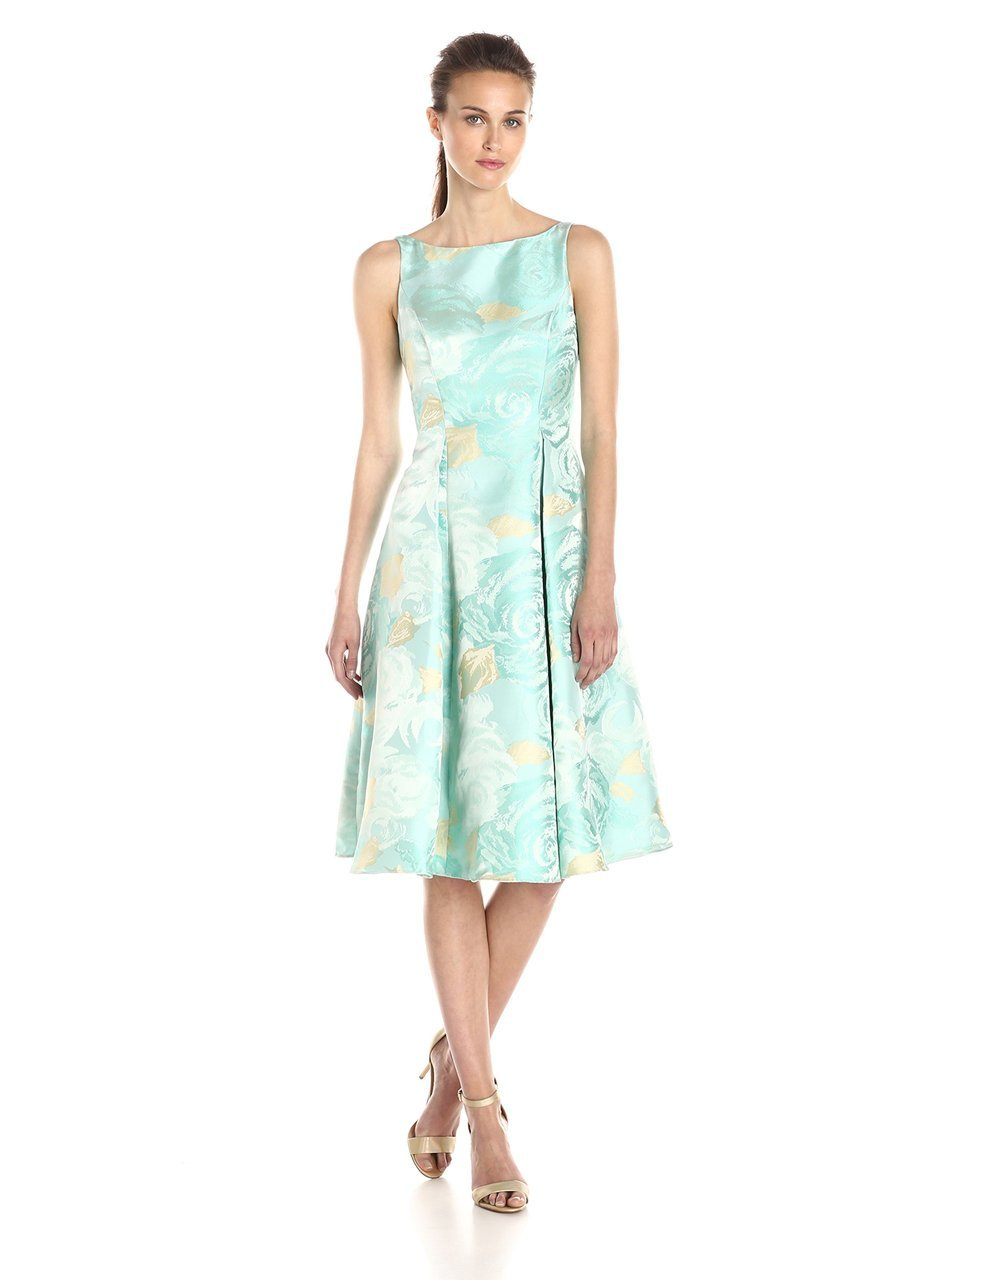 Adrianna Papell - 41889270 Tea-Length Jacquard Floral Print Dress in Green and Floral